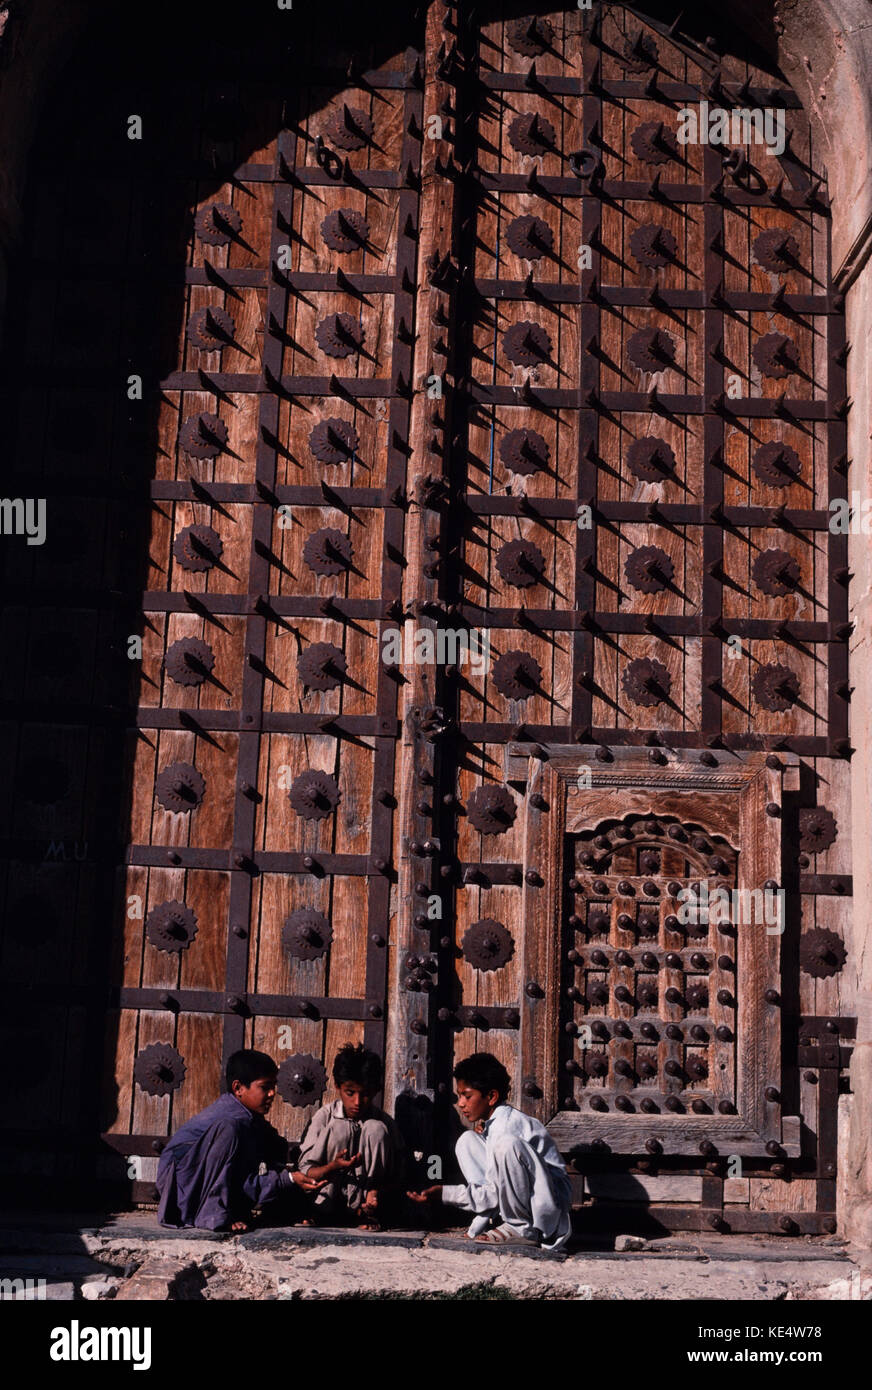 Children playing beside the mighty doors of the Attock Fort built to Stock Photo 163606108 - Alamy & Children playing beside the mighty doors of the Attock Fort built ...